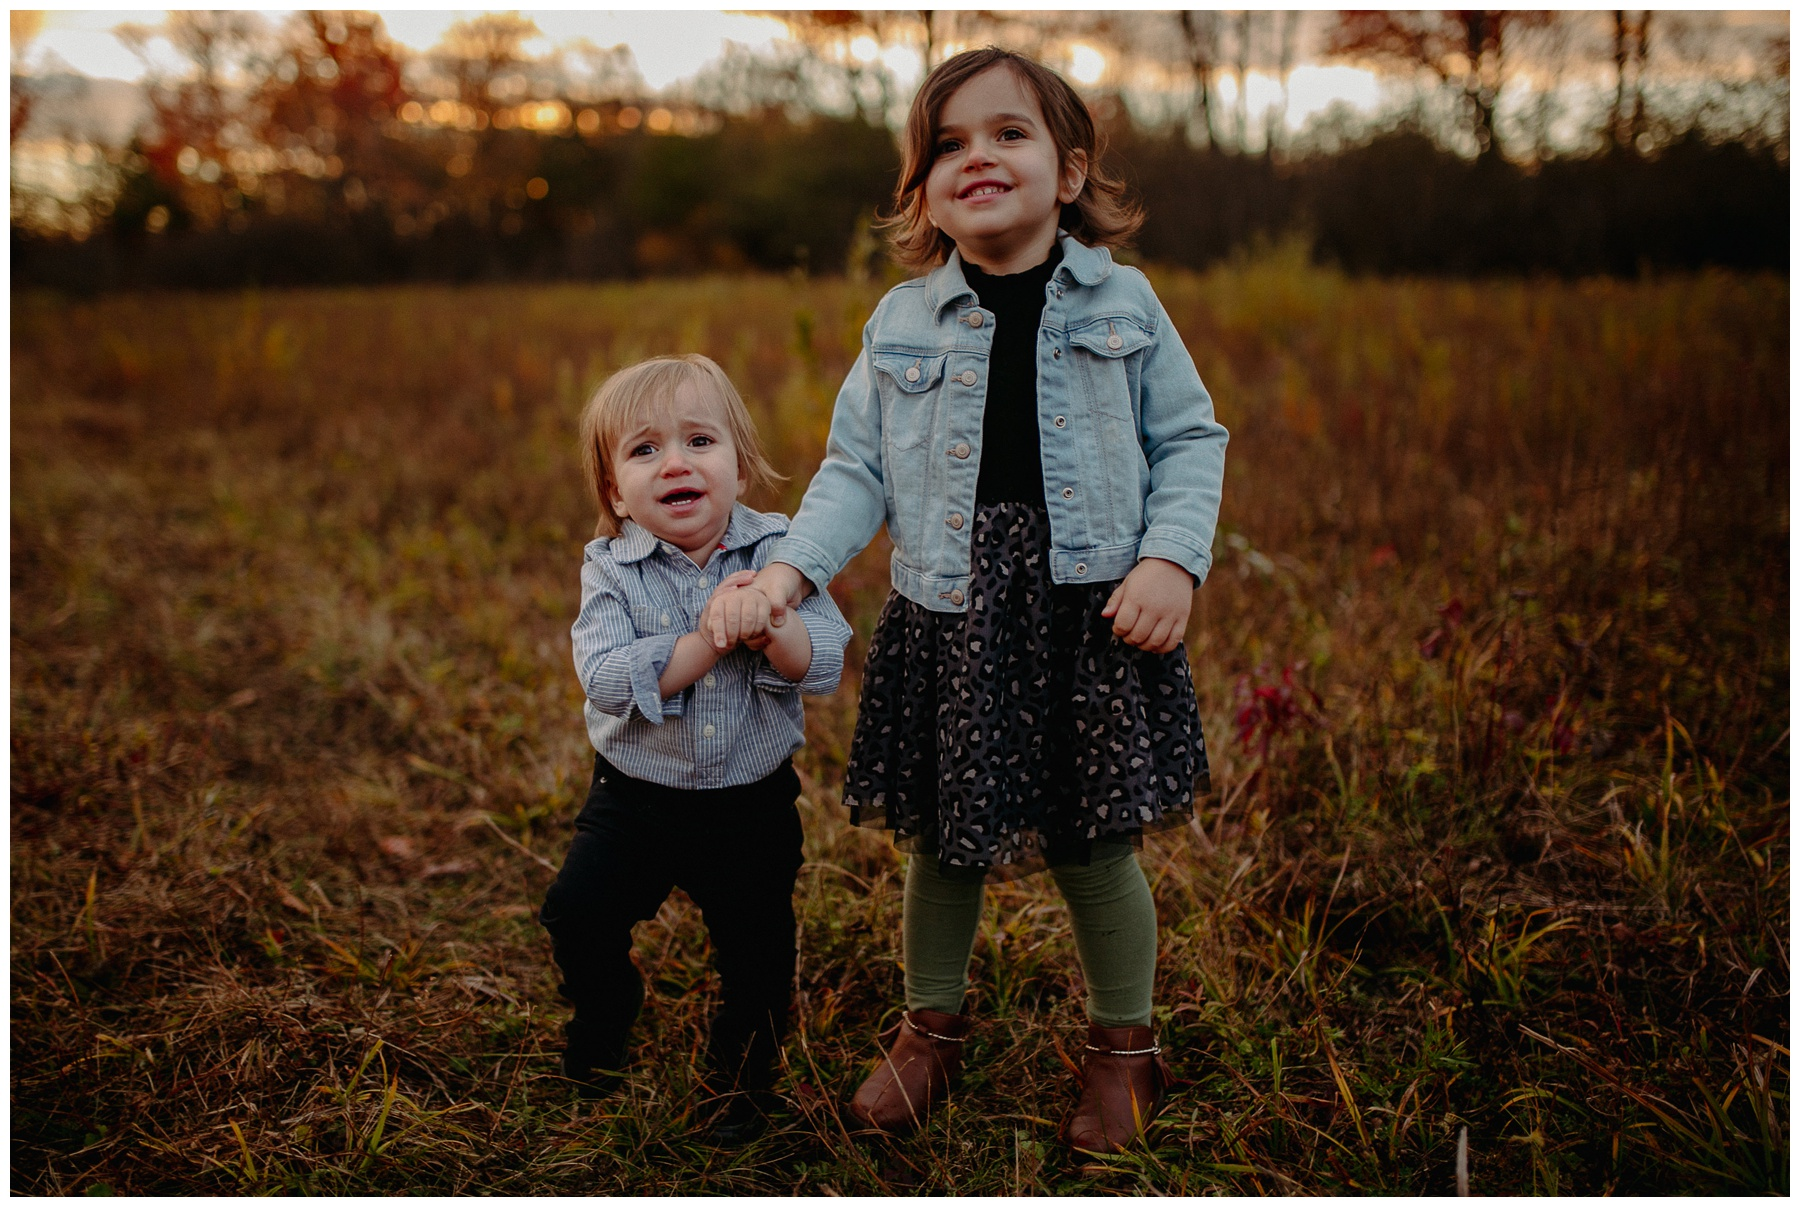 kerry ford photography - fall autumn family session perth018.jpg